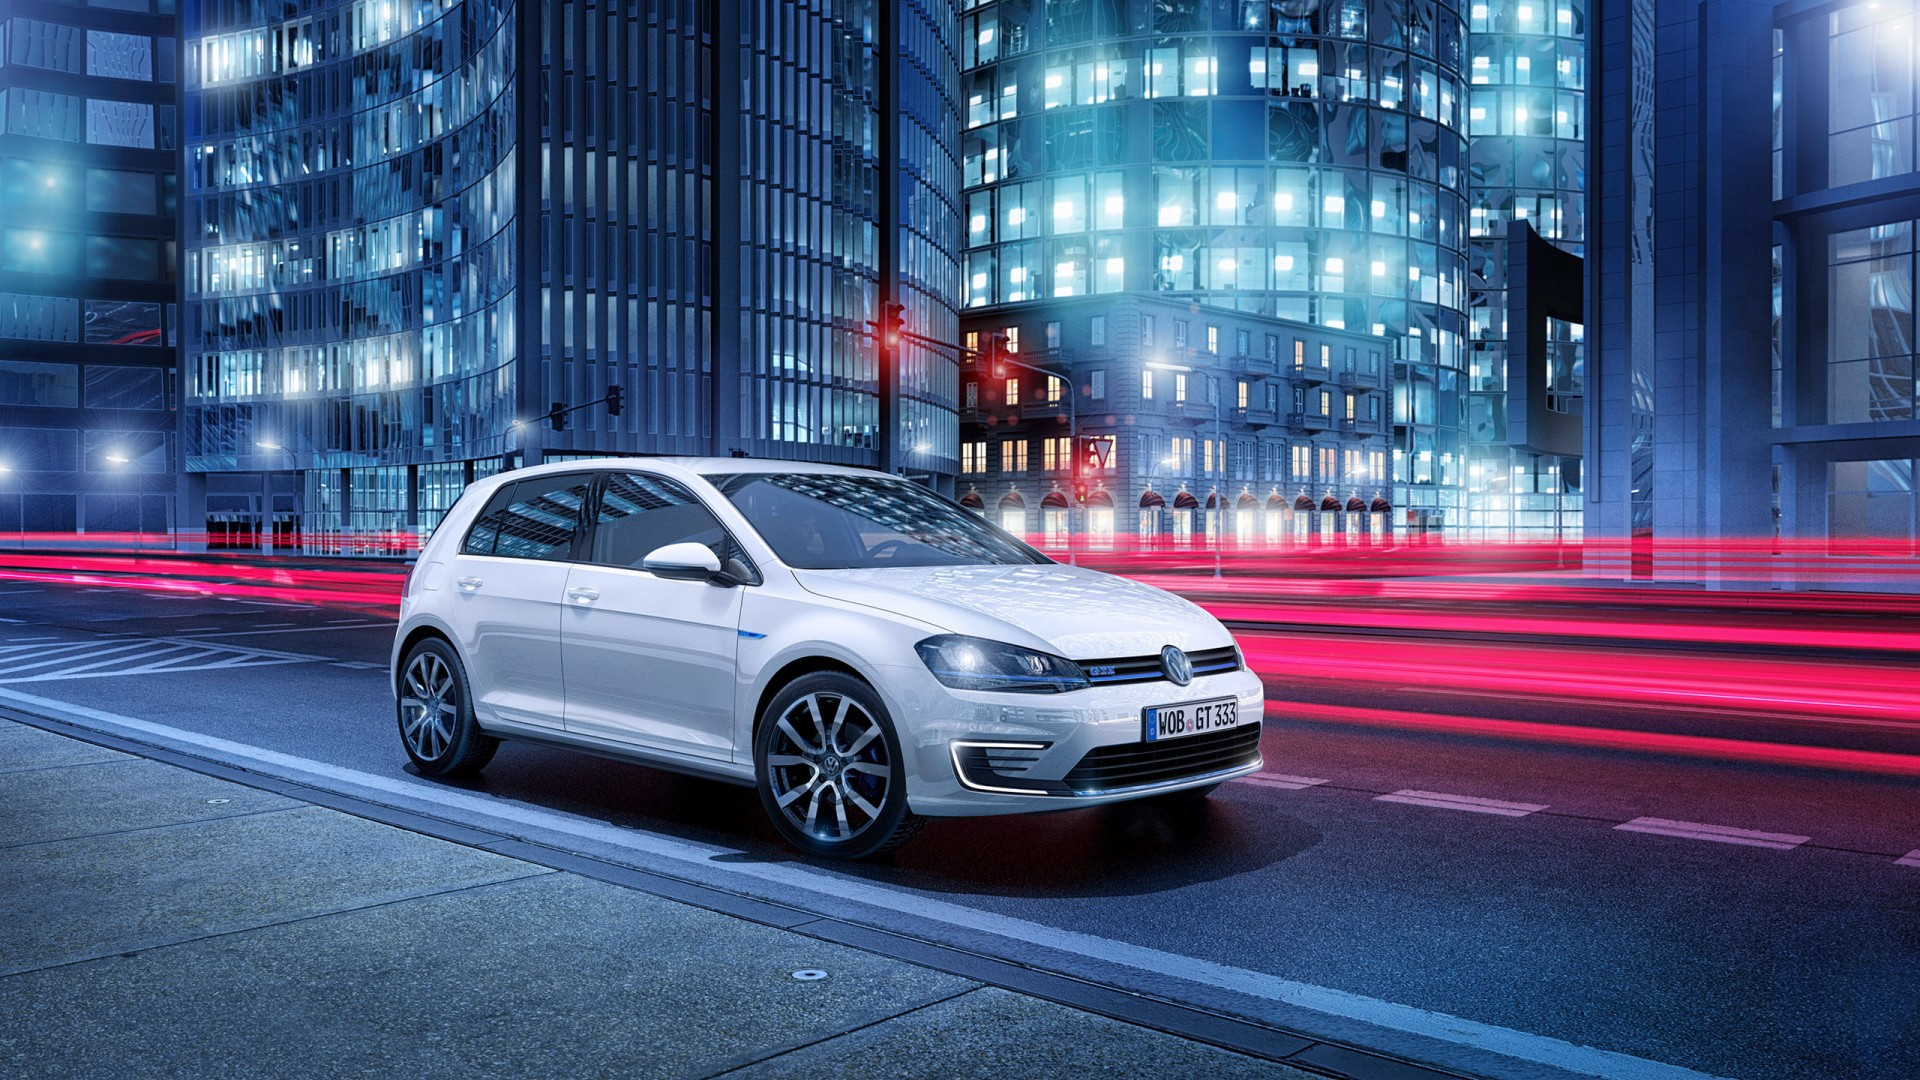 2014 volkswagen golf gte plug in hybrid wallpaper hd car. Black Bedroom Furniture Sets. Home Design Ideas